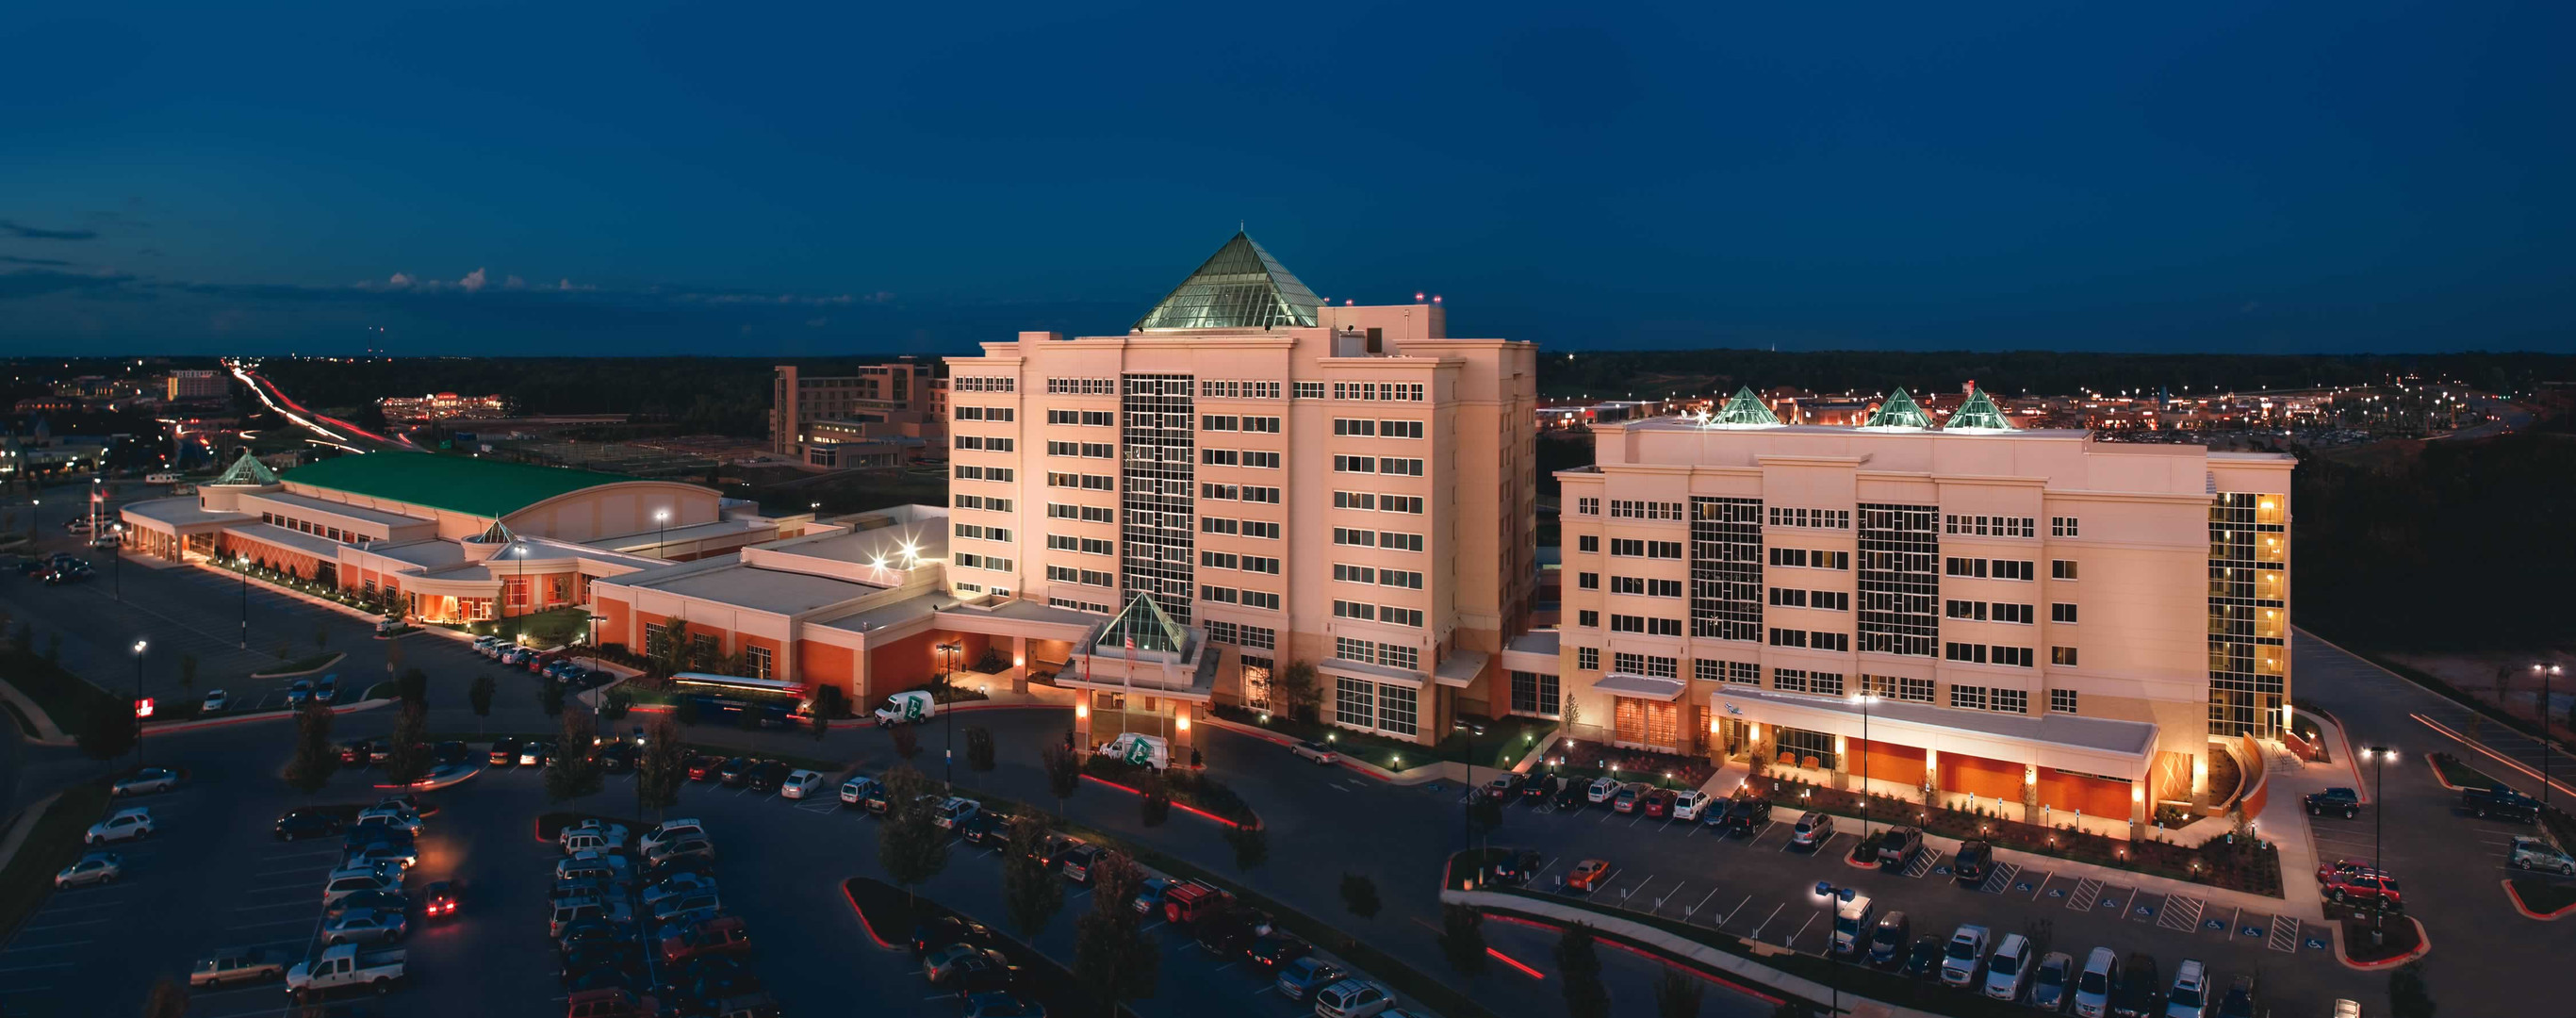 Embassy Suites Northwest Arkansas Hotel, Spa & Convention Center